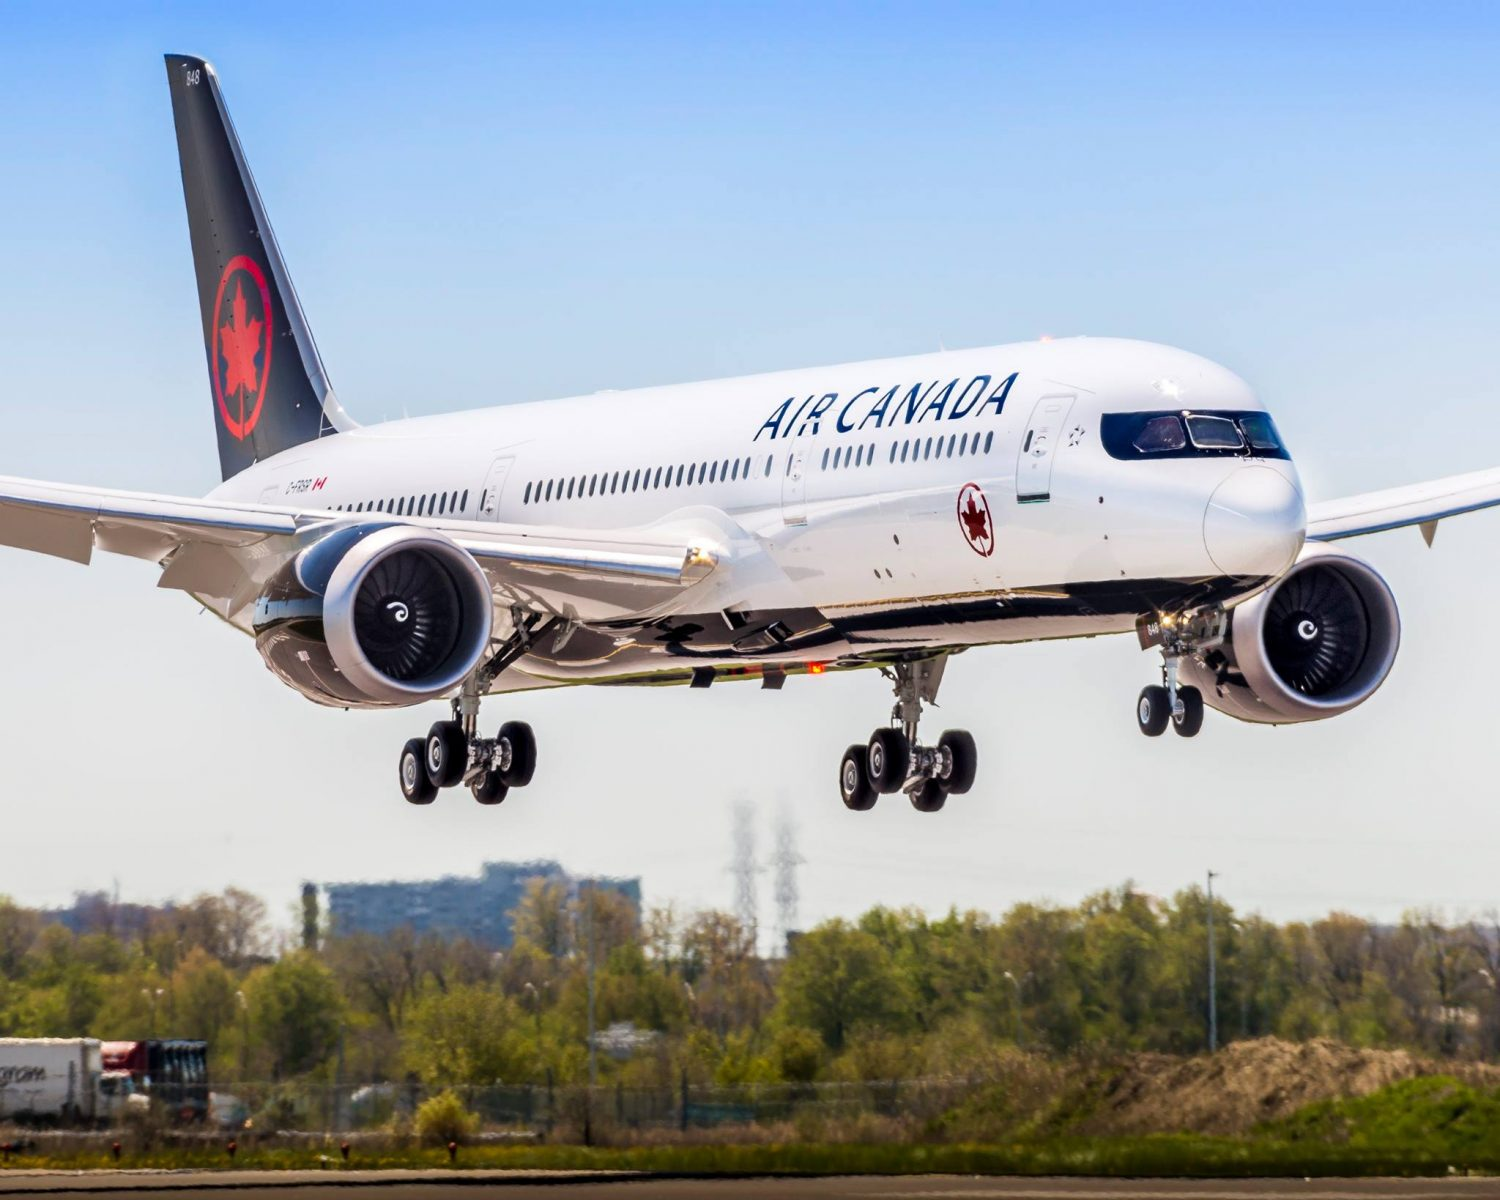 You Can Fly From The US to Europe Starting At 60,000 AeroPlan Miles Each Way